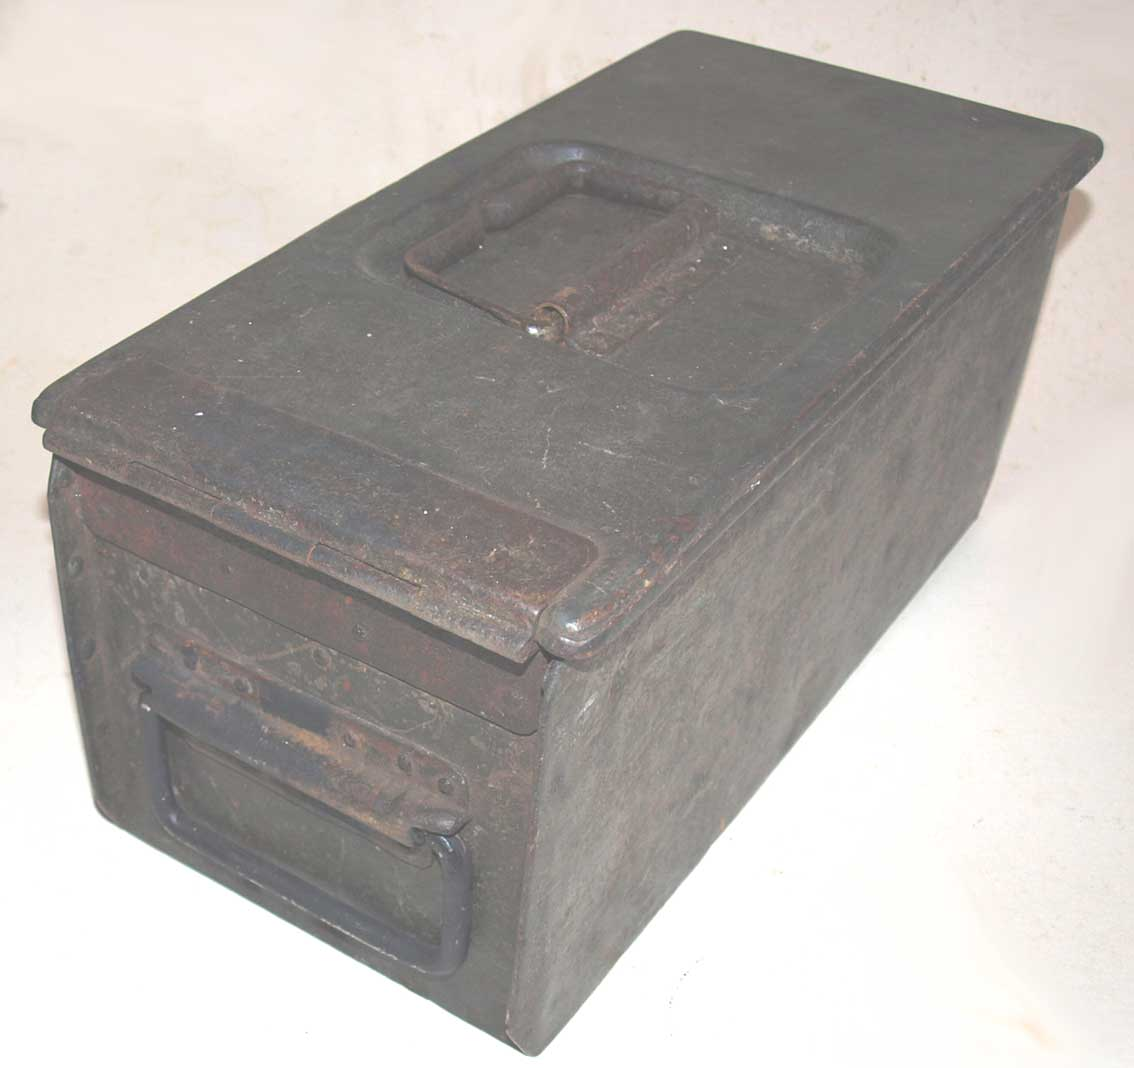 MG08 WW1 Double Ammunition Belt Box. PRICE REDUCED! was £145